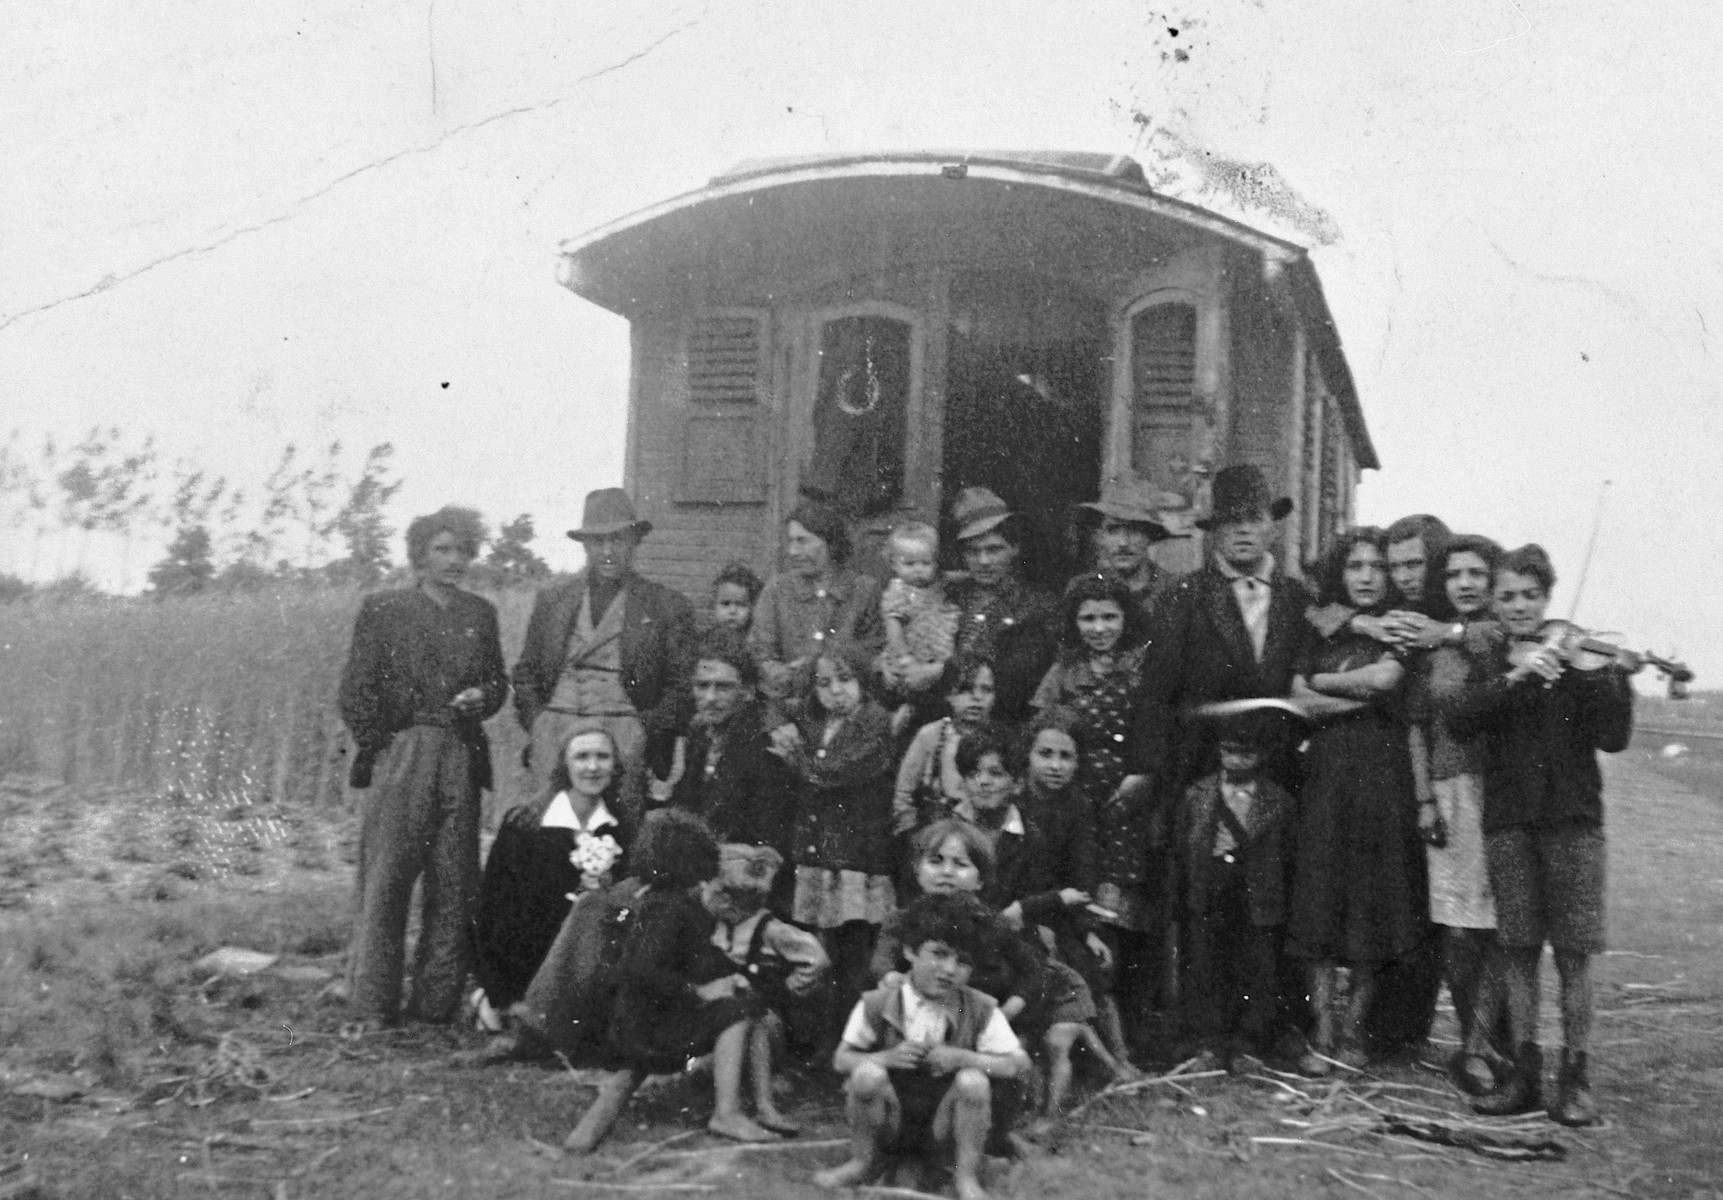 A group of Roma (Gypsies) poses in front of a caravan.